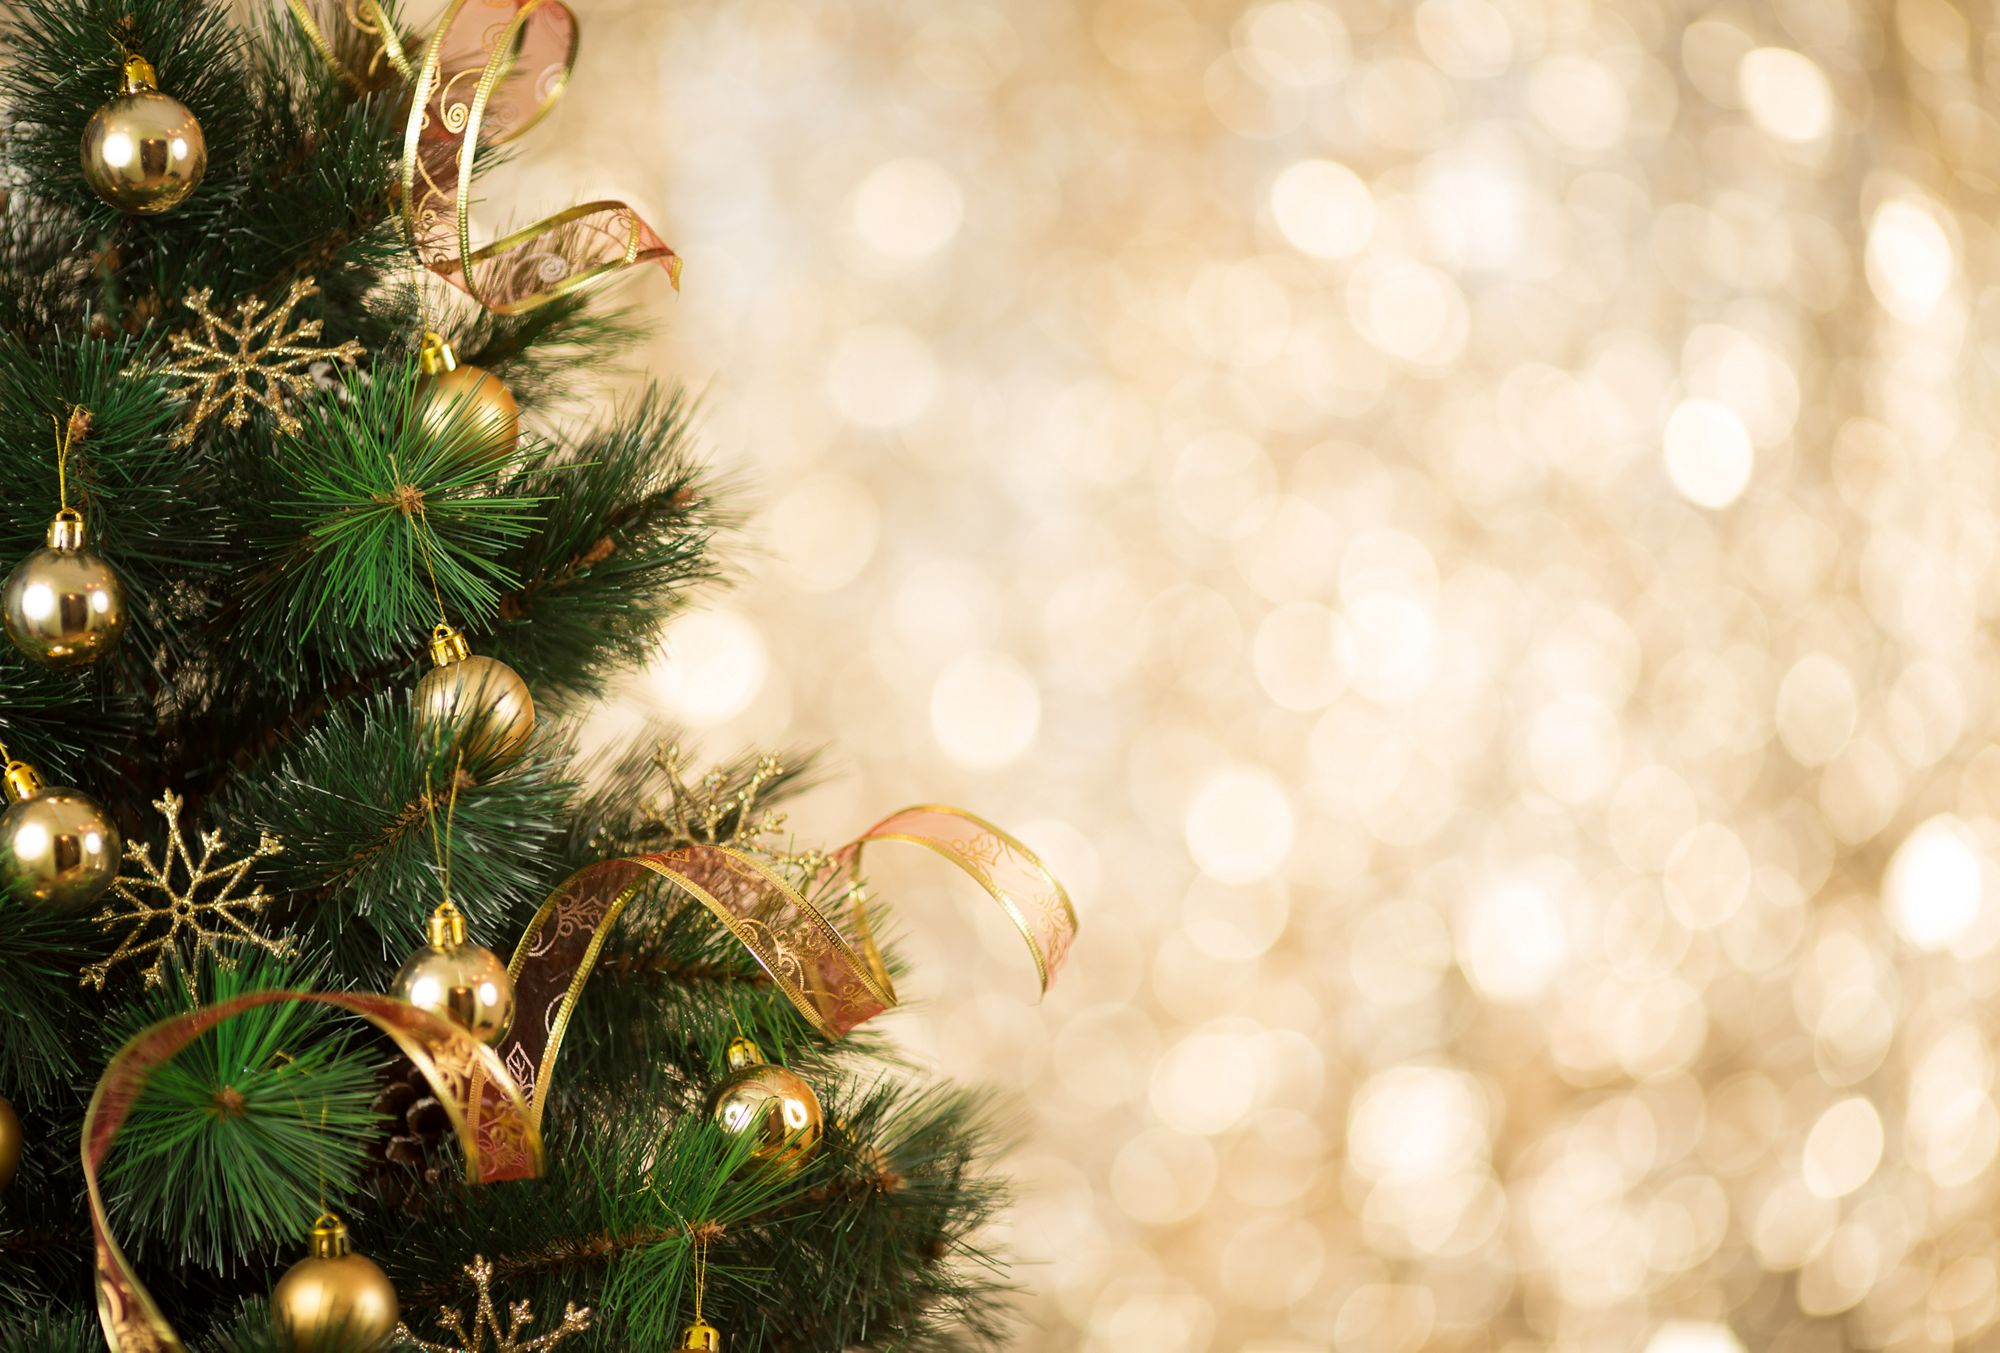 Close-up view of a Christmas tree trimmed with gold and set against a shimmering gold background